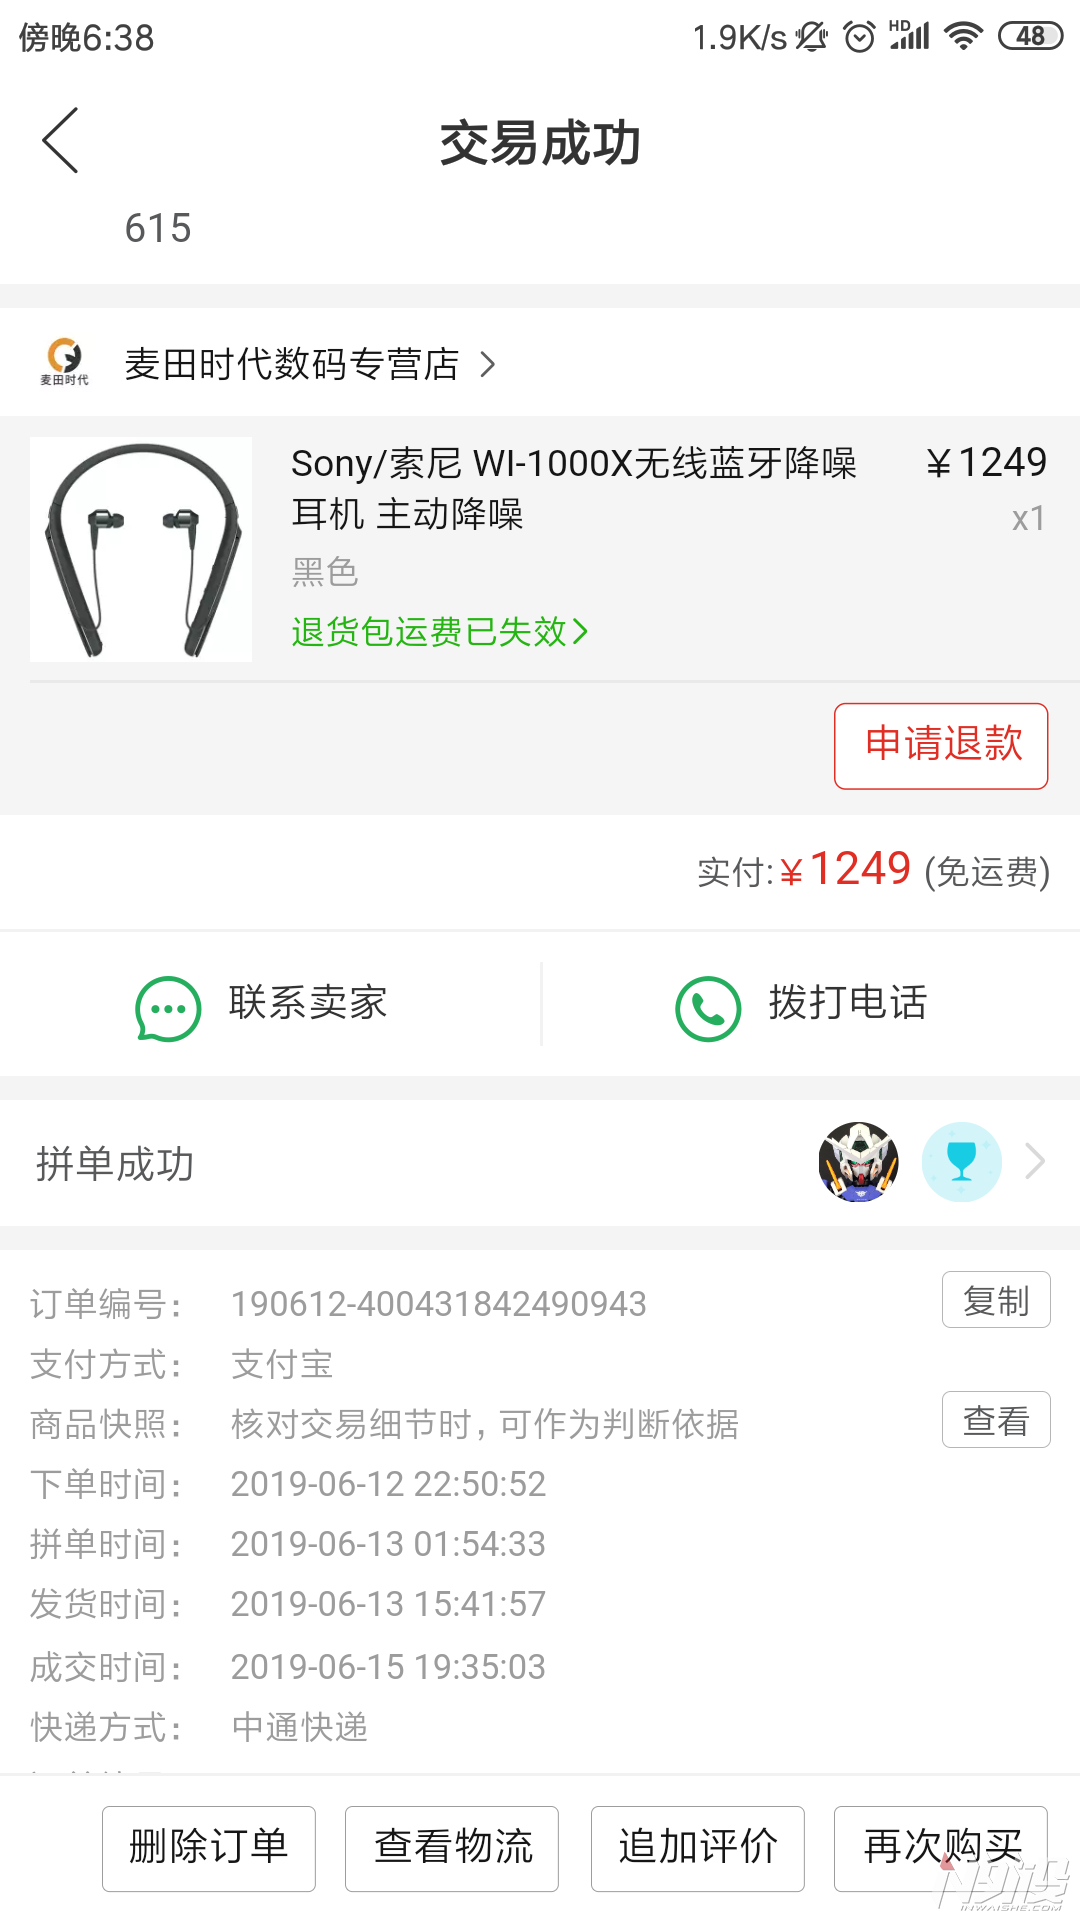 Screenshot_2019-06-16-18-38-49-559_com.xunmeng.pi.png